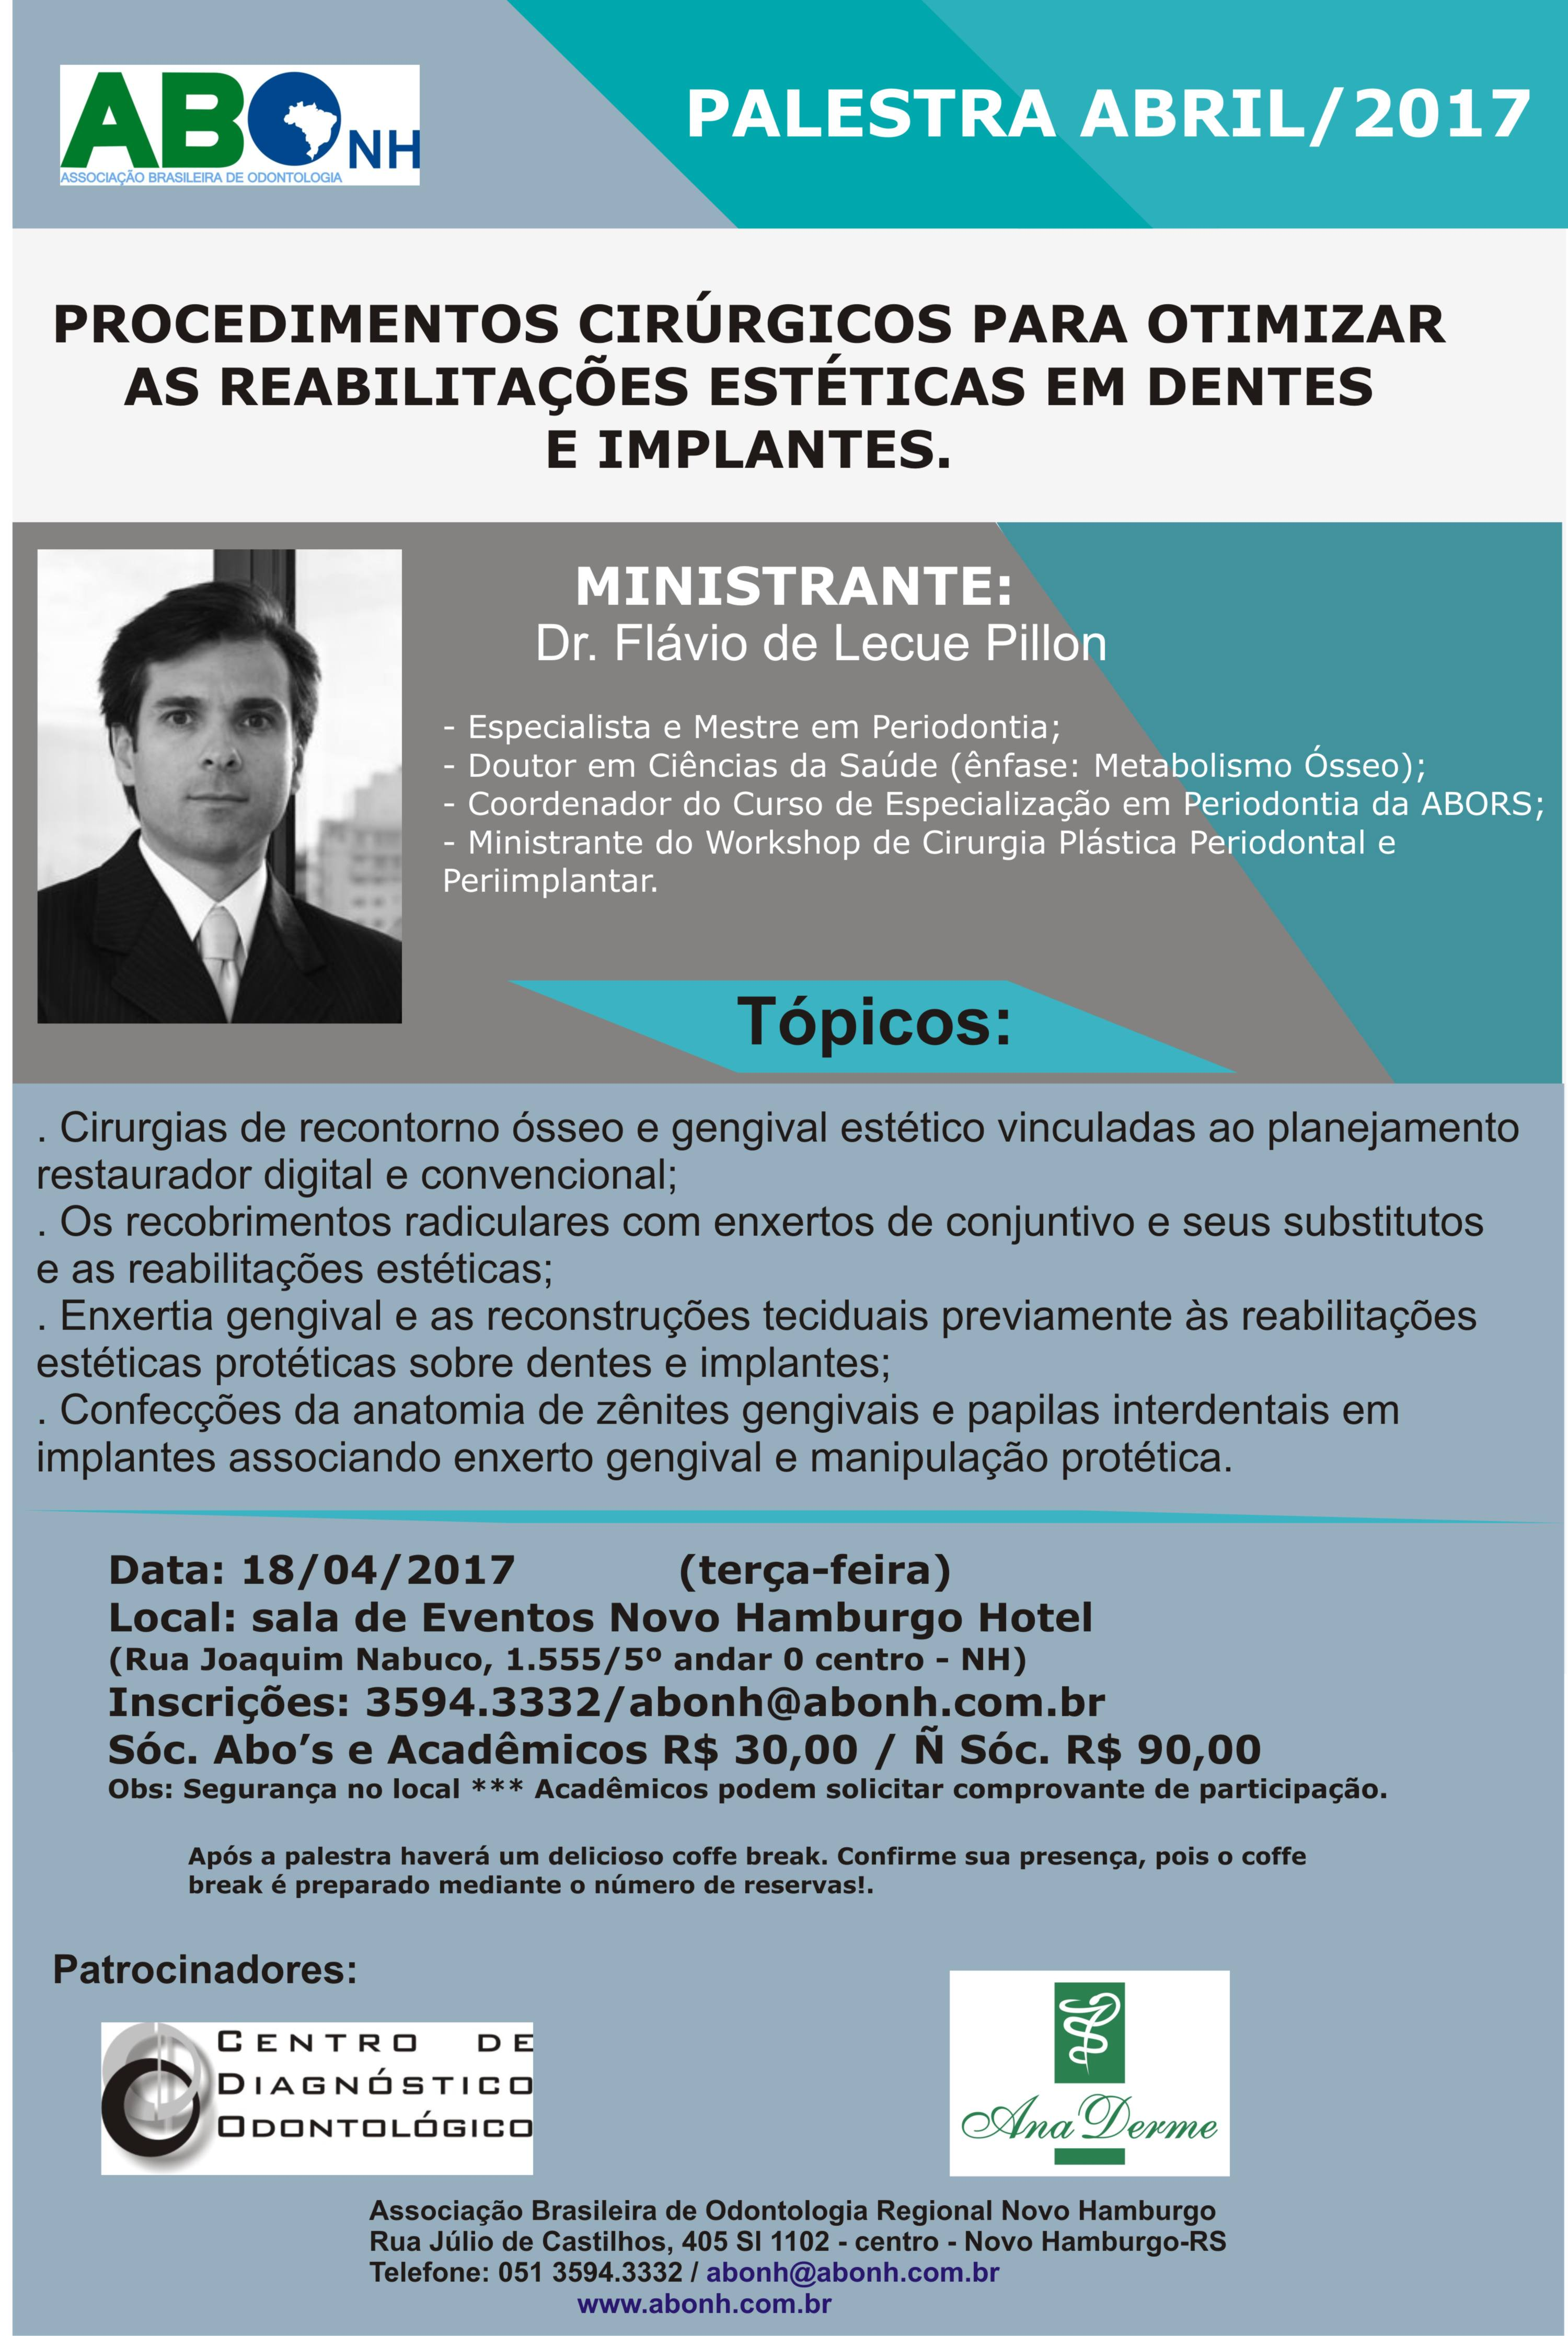 palestra-abril-2017